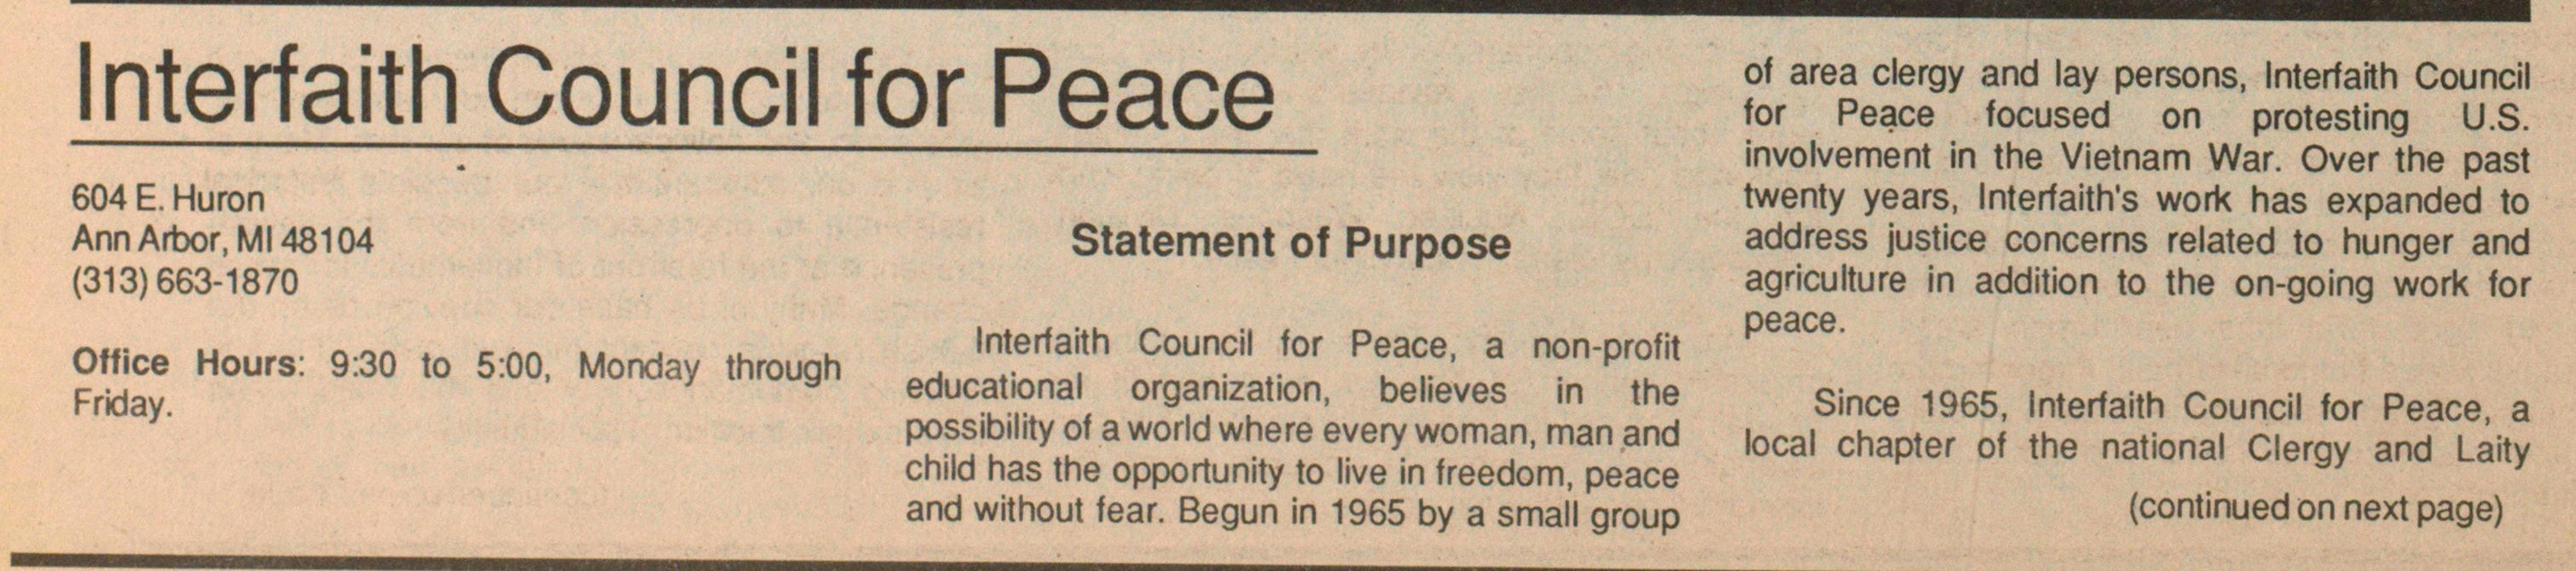 Interfaith Council For Peace image